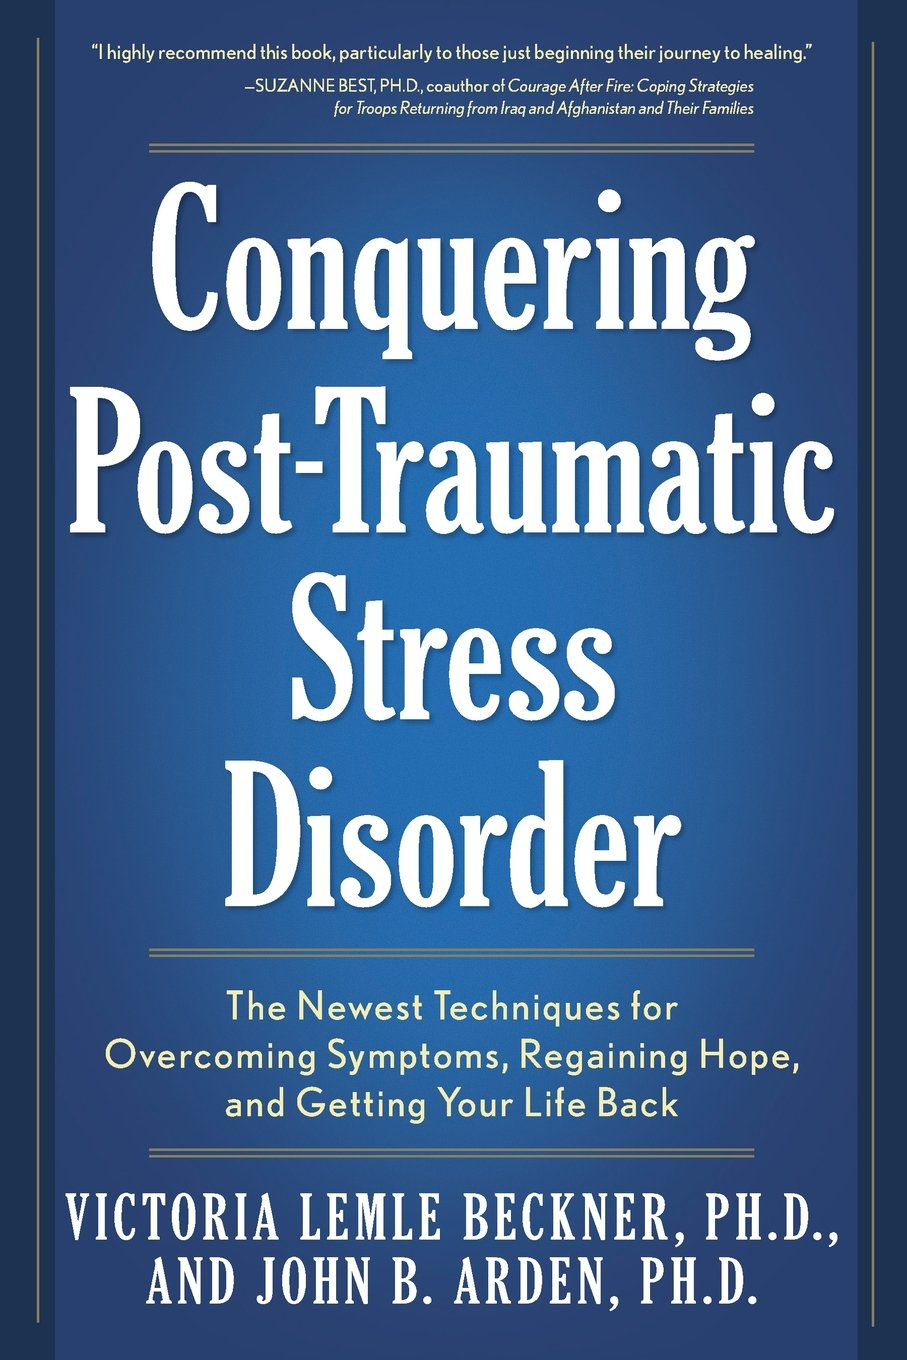 Download Conquering Post-Traumatic Stress Disorder: The Newest Techniques for Overcoming Symptoms, Regaining Hope, and Getting Your Life Back ebook